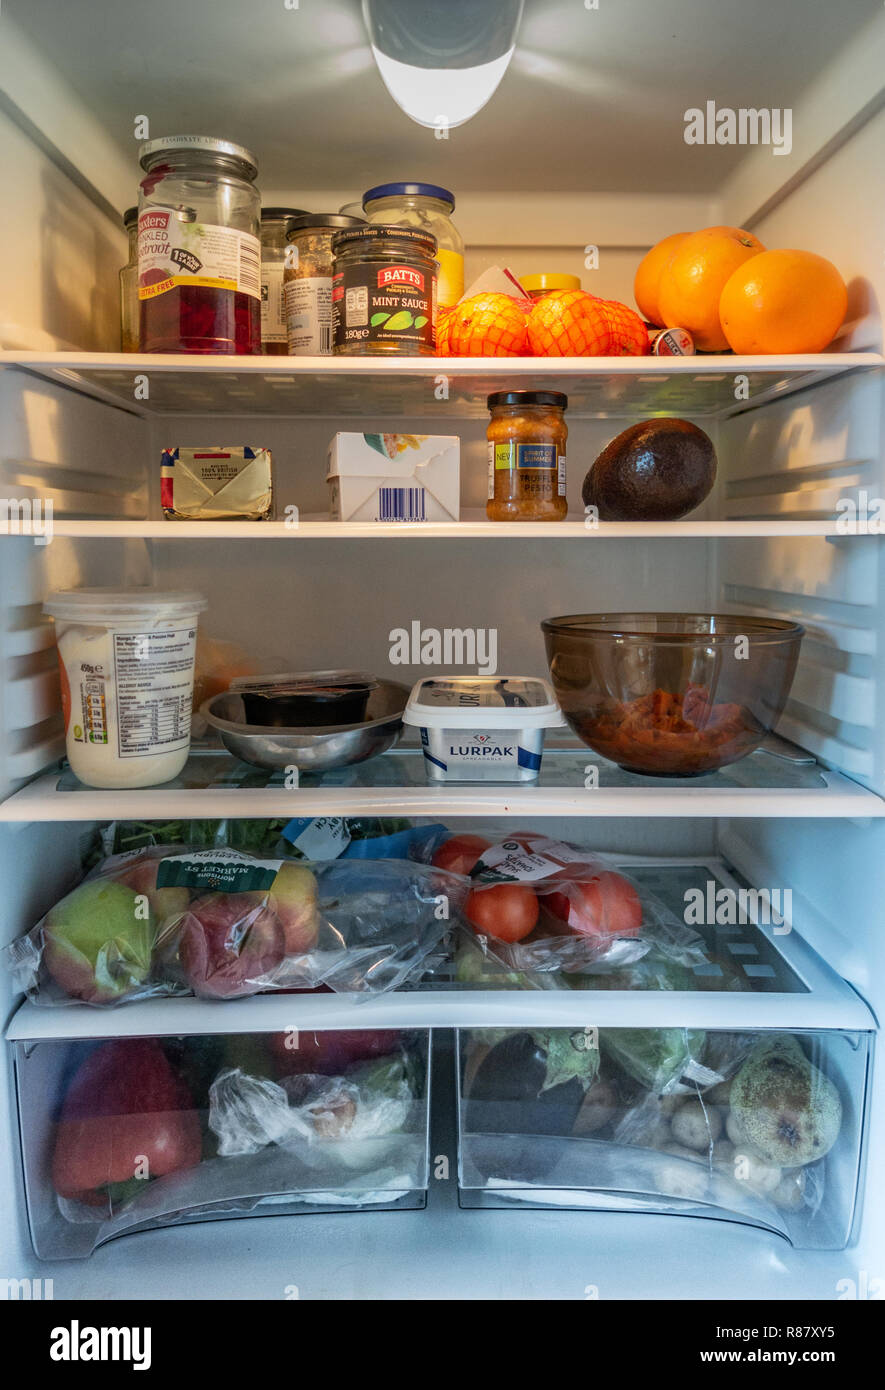 Inside view of a fridge and Contents owned by a 90 year old lady in England - Stock Image